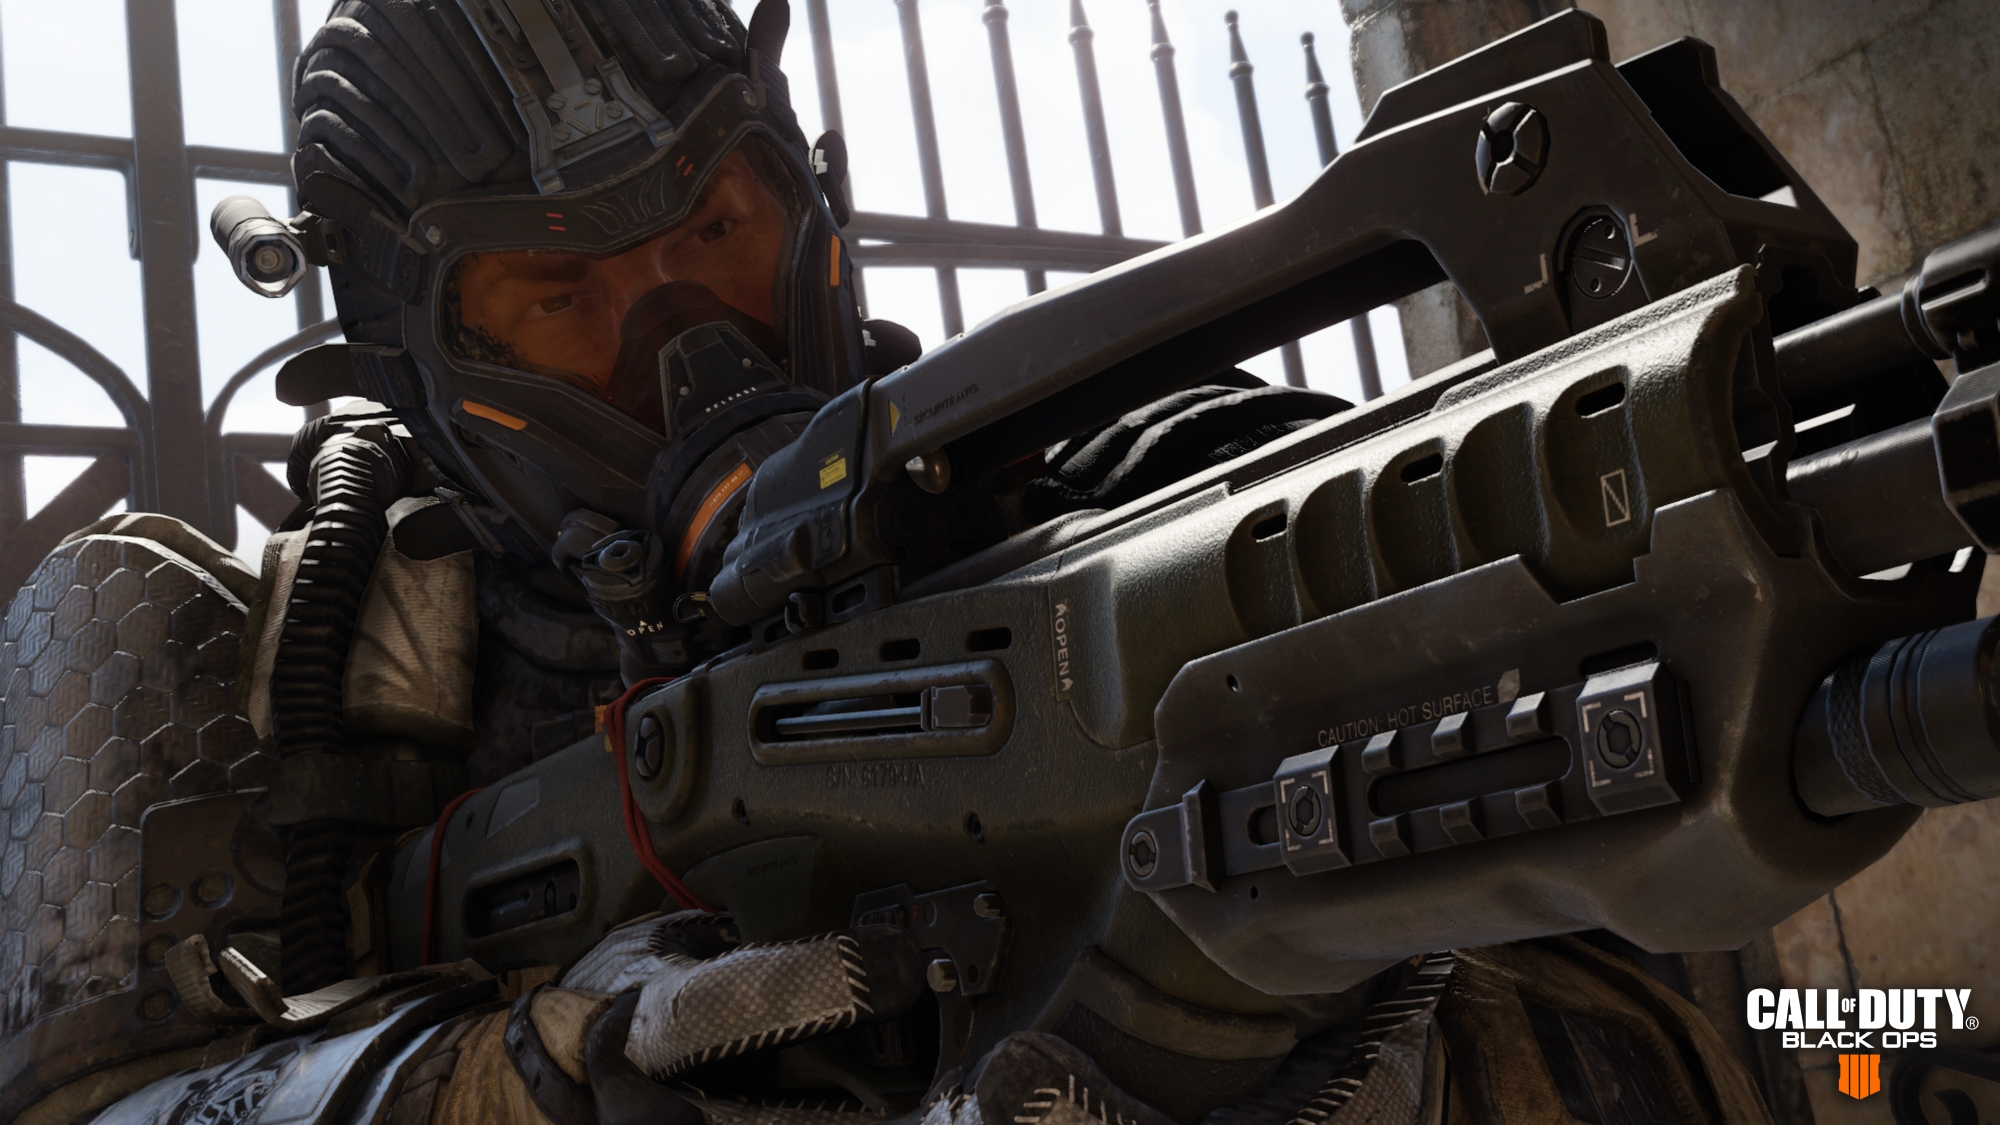 Call Of Duty: Black Ops 4 - Will Blackout be the new Fortnite?